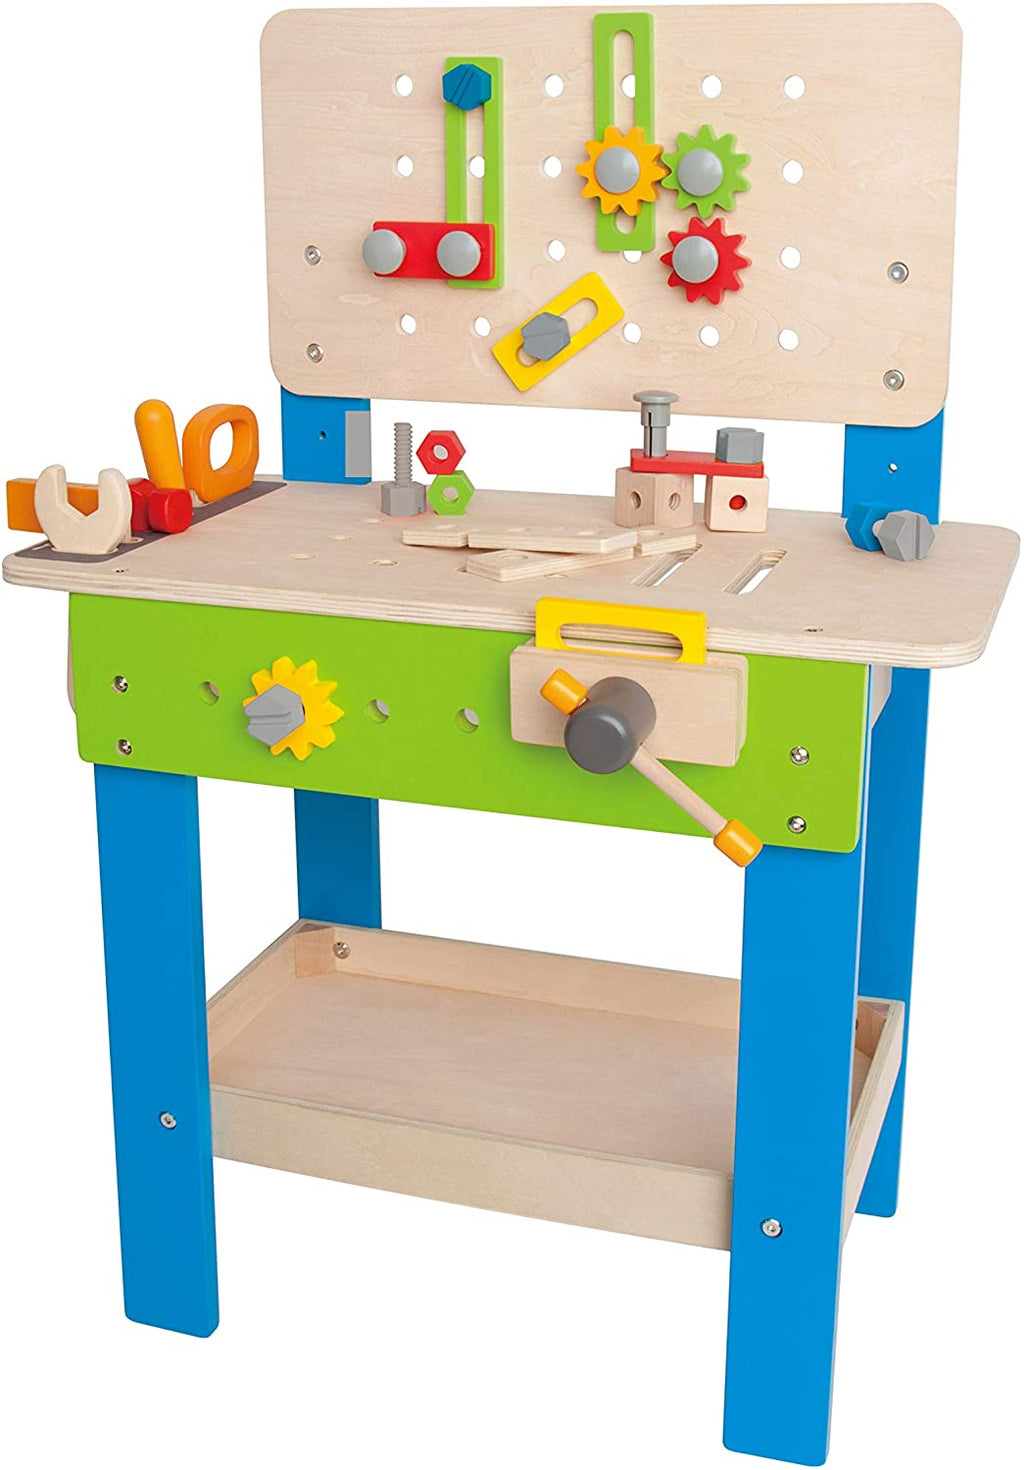 Hape Toys - Master Workbench